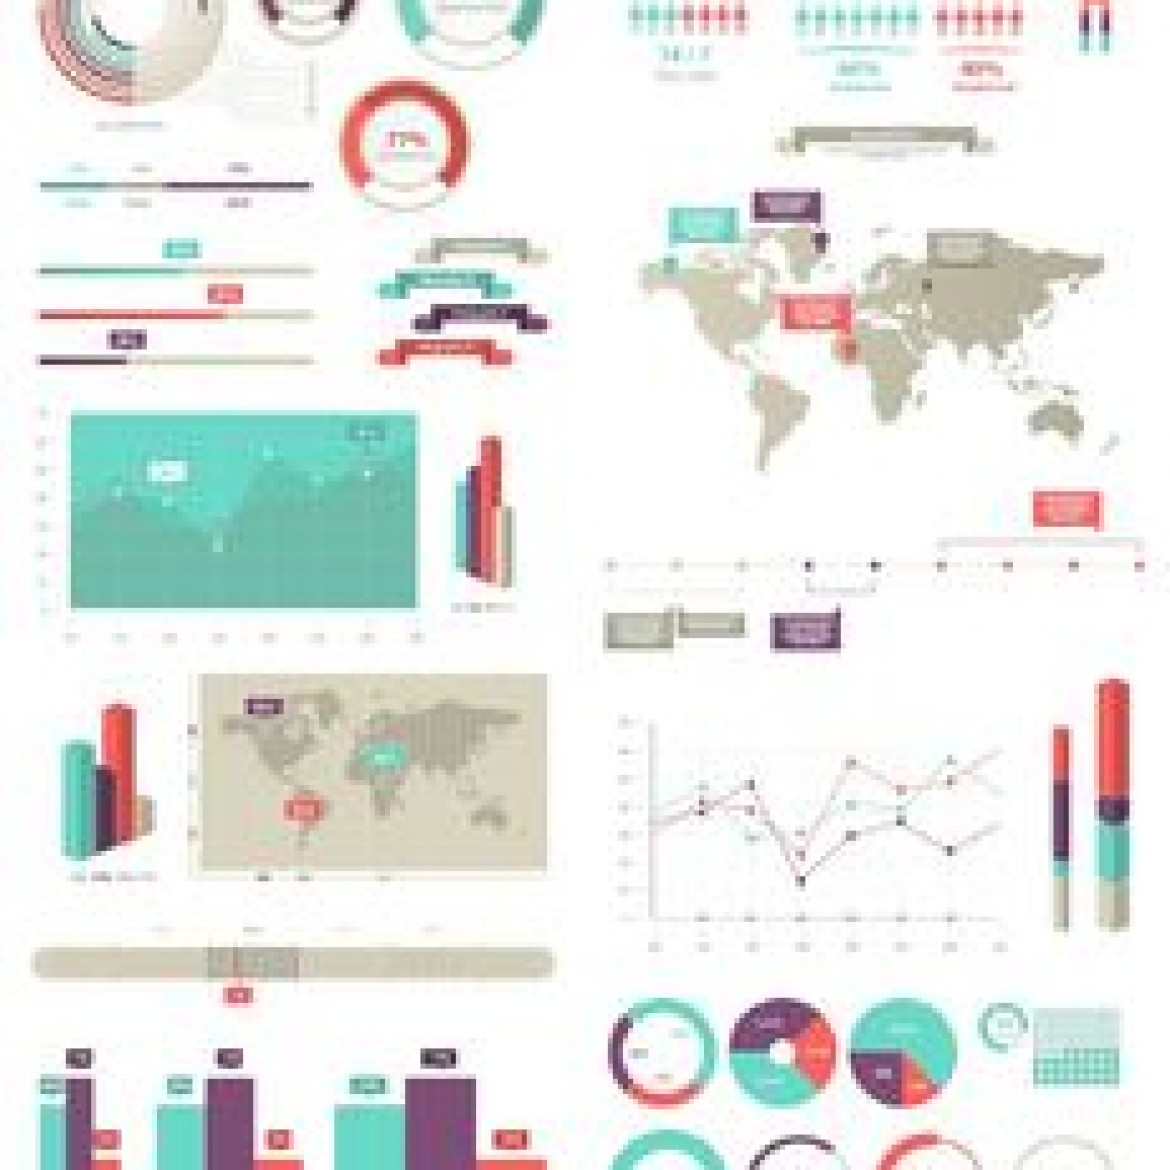 Free vector 30 Plus Info Graphic Set with Maps and Statistics #5281